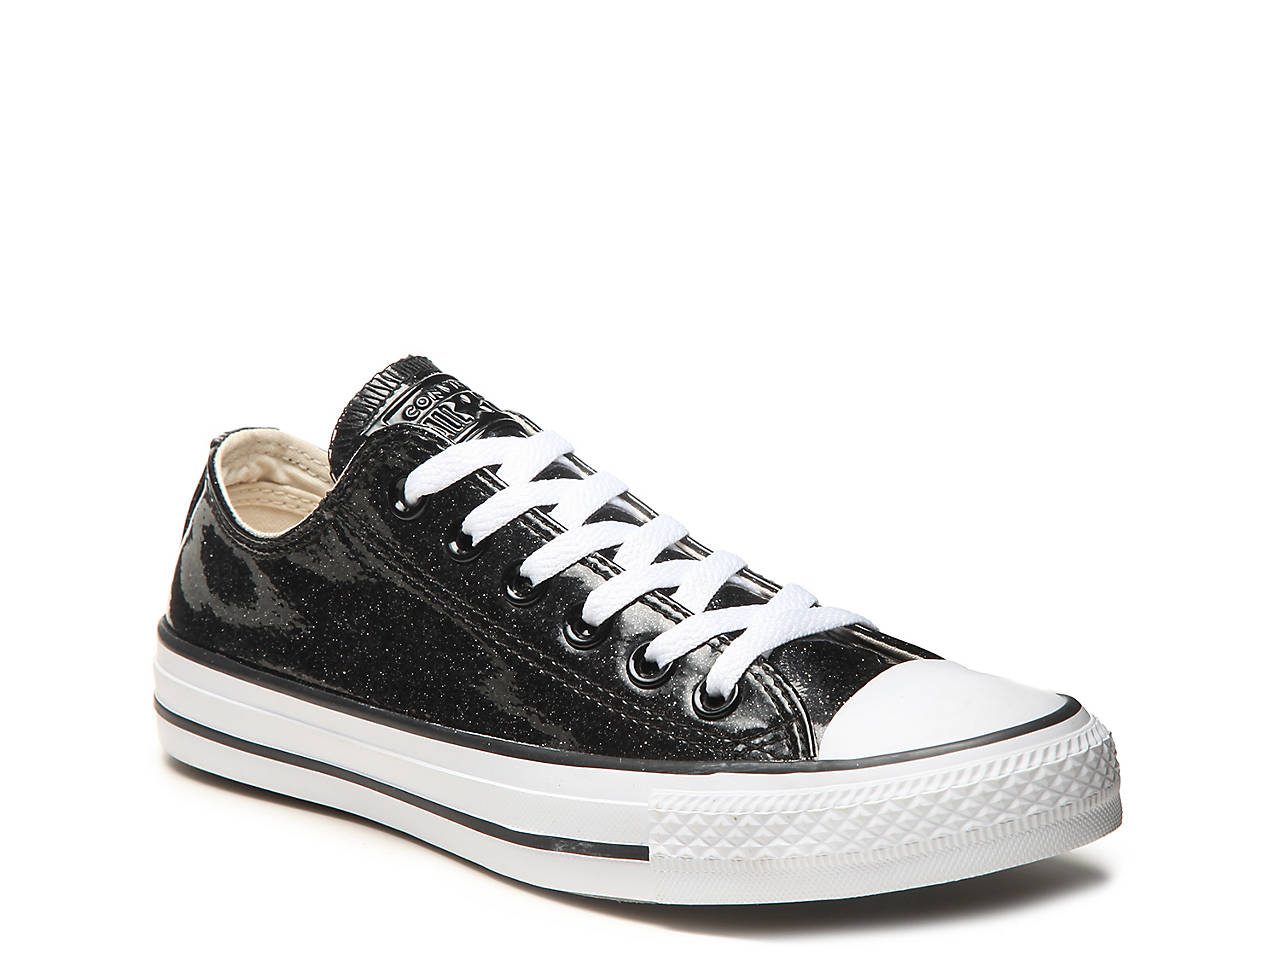 best sneakers b2d79 58a67 Chuck Taylor All Star Glitter Sneaker - Women's